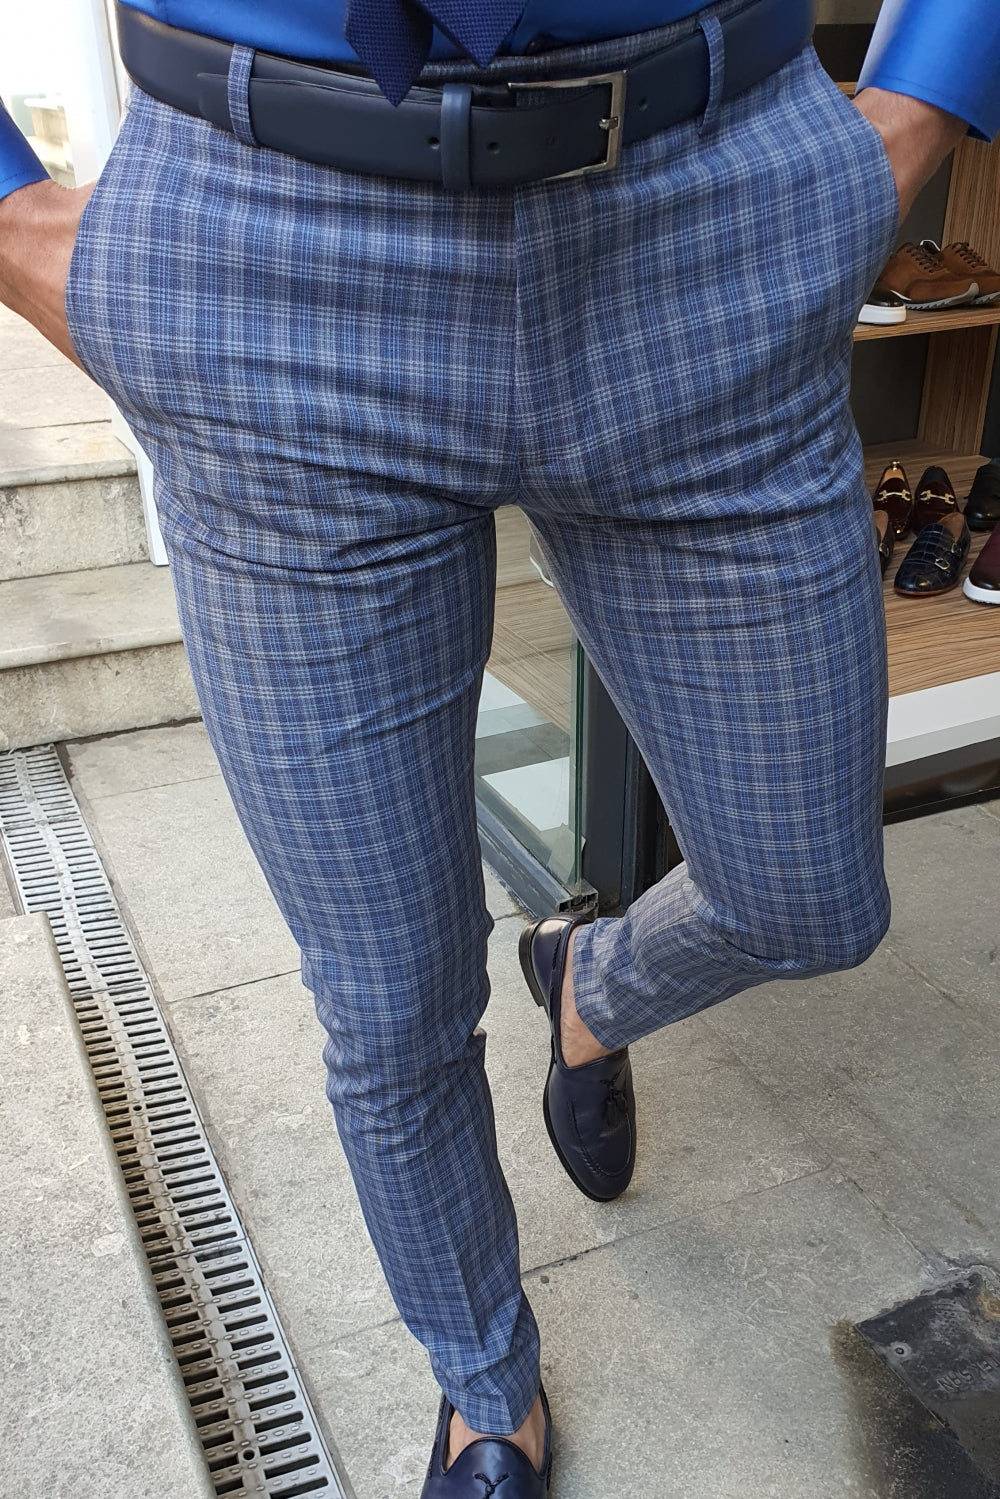 Oakland Fabric  Plaid Pants Navy Blue